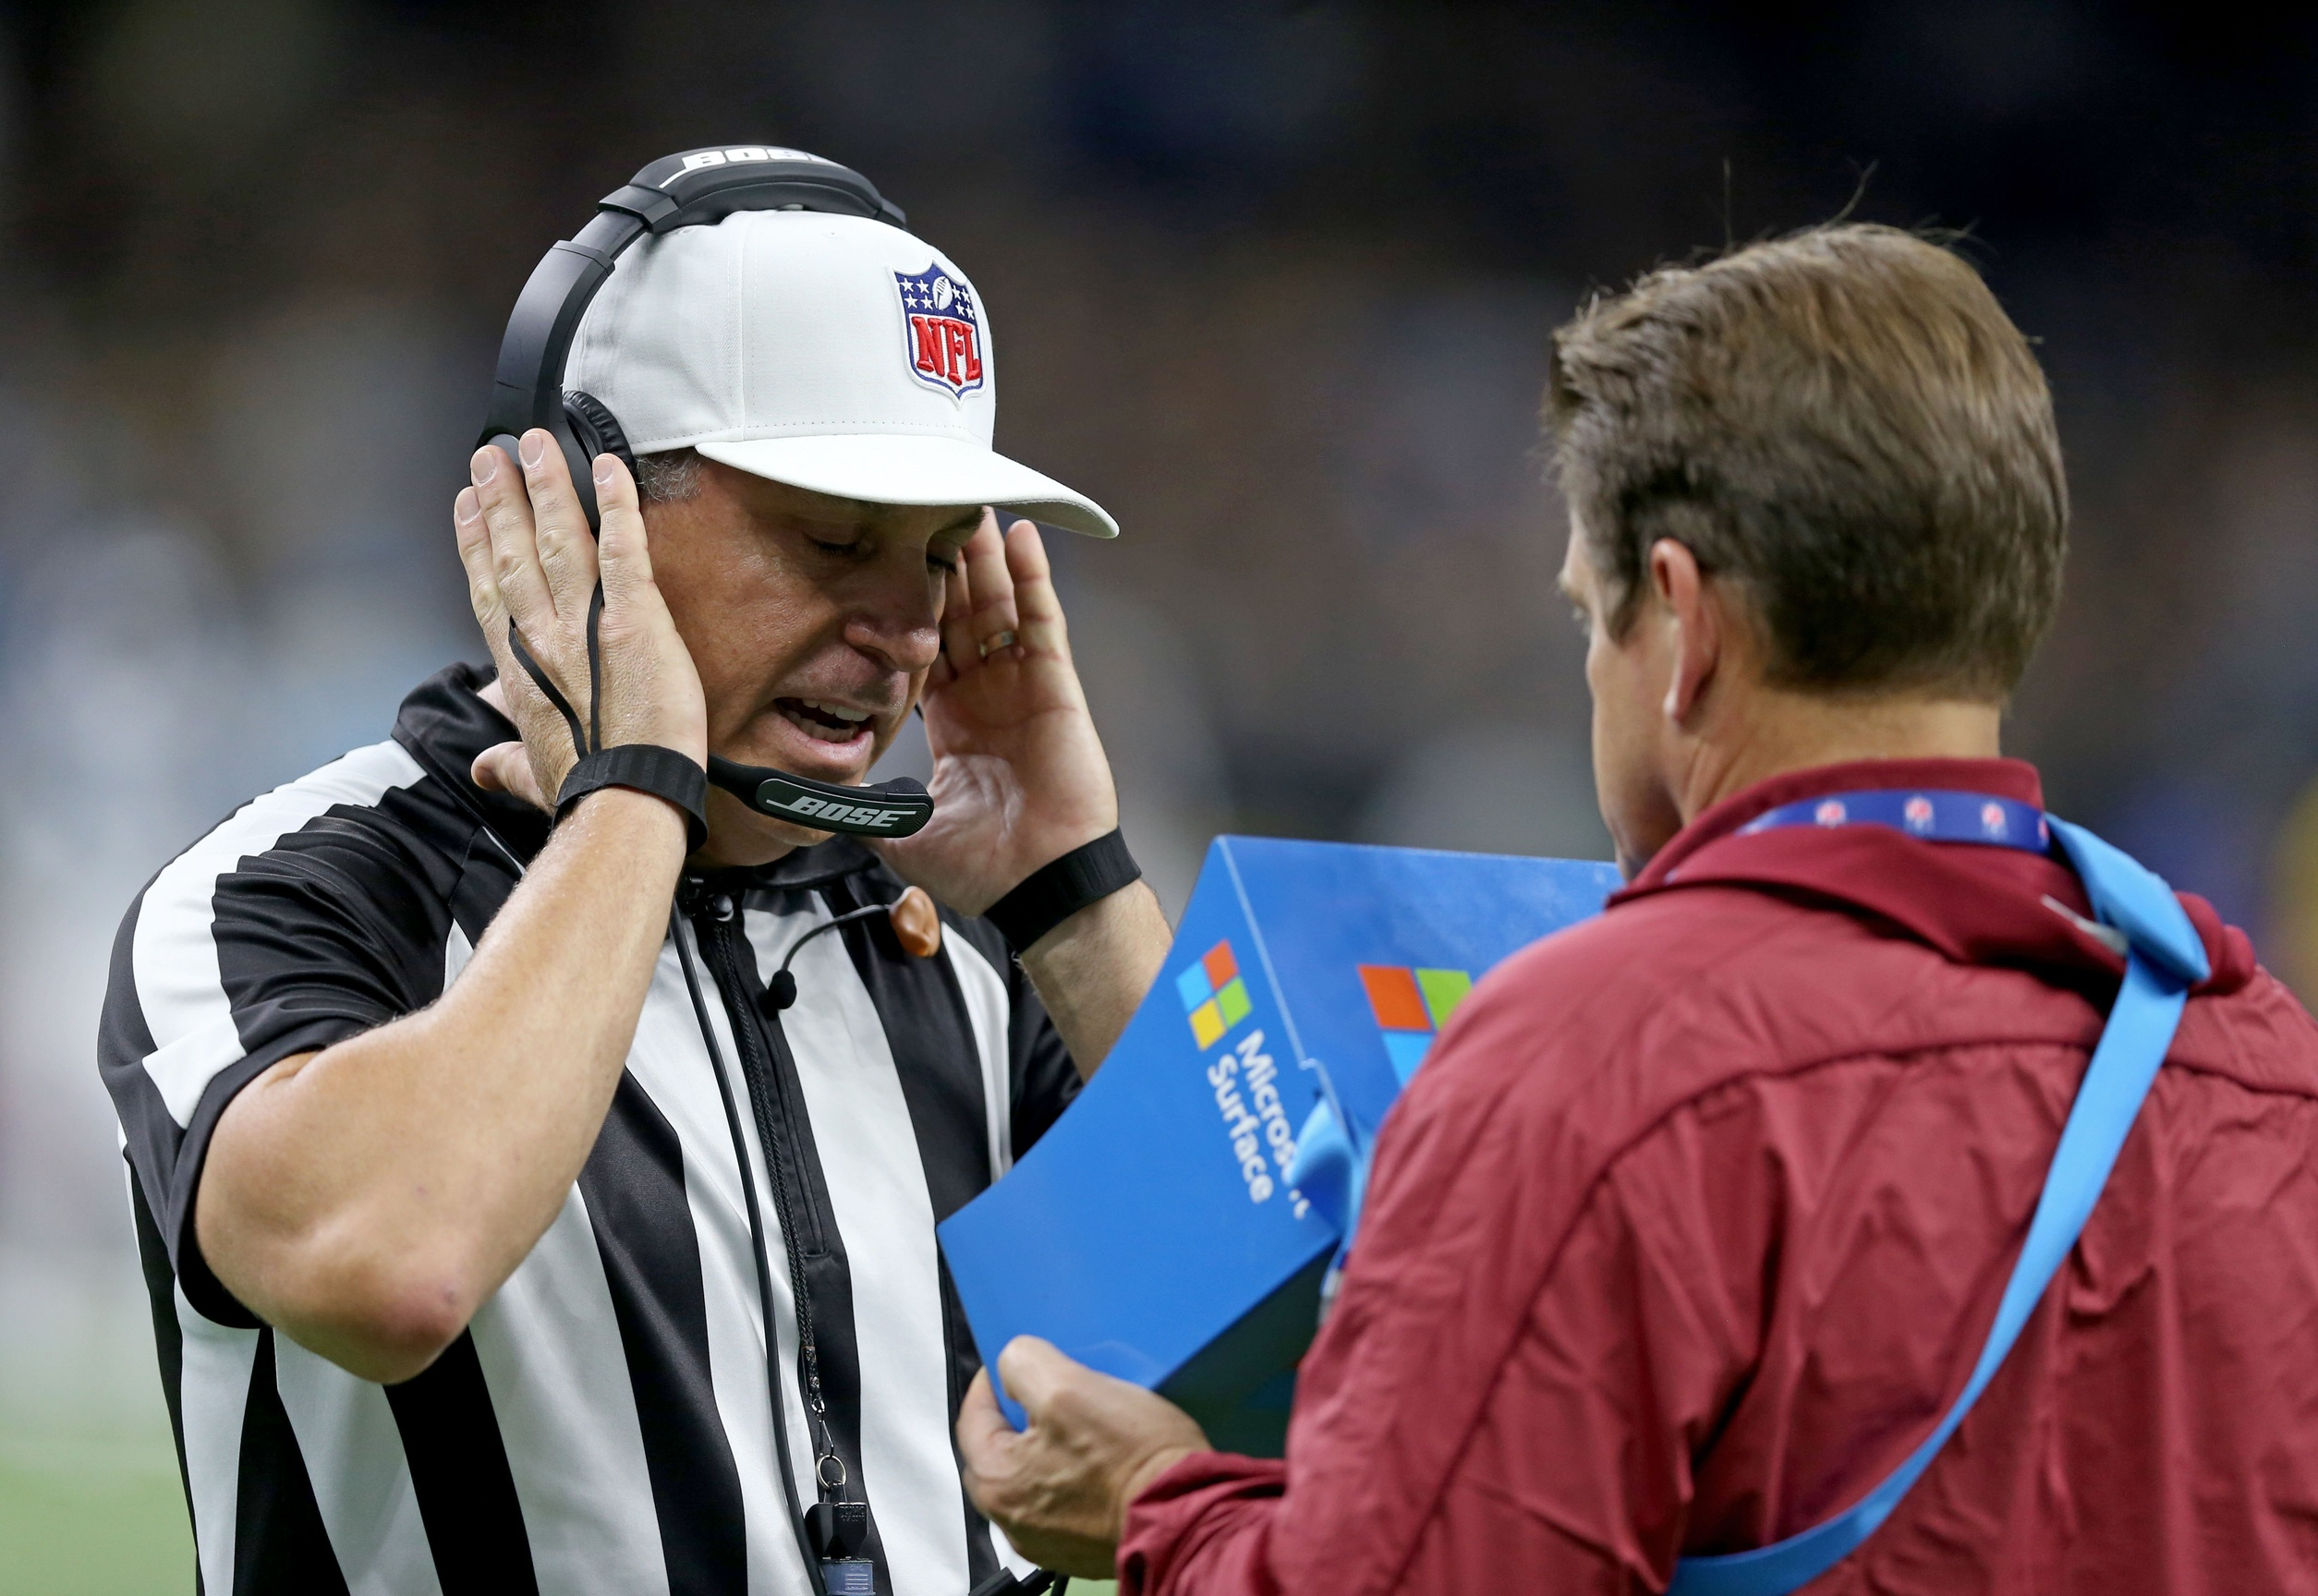 NFL teams propose 9 rule changes, most to adjust replay